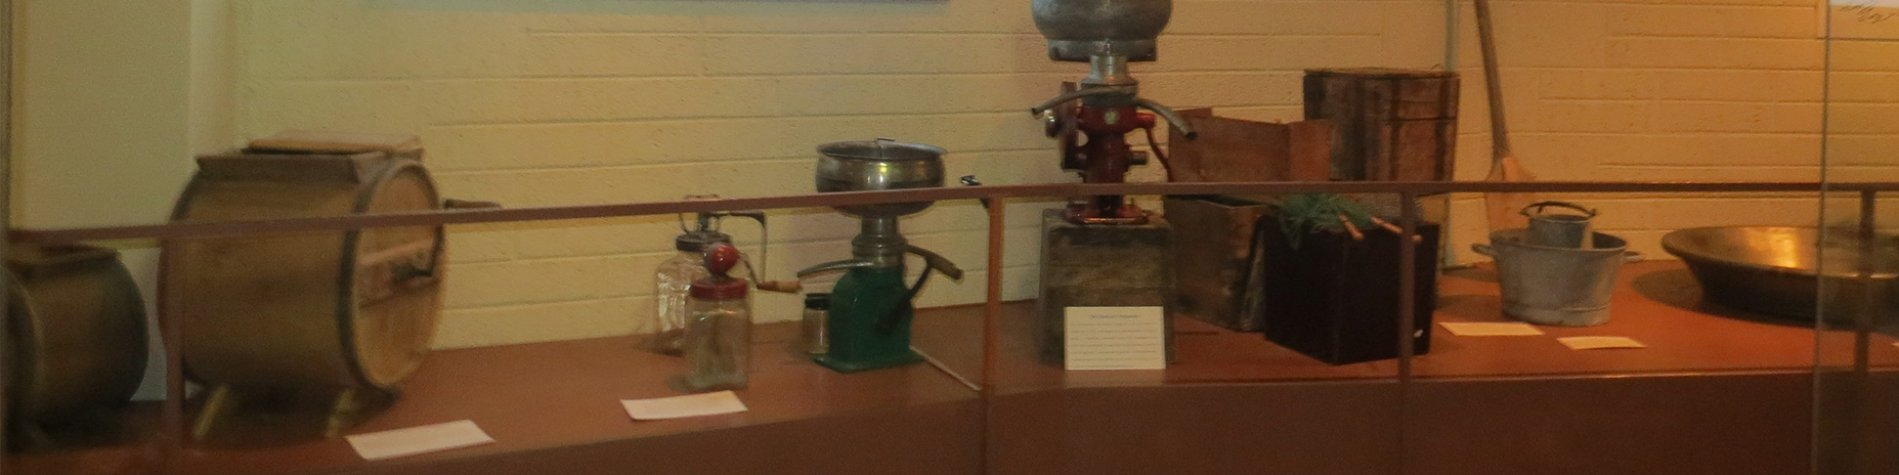 Butter Making Tools on display